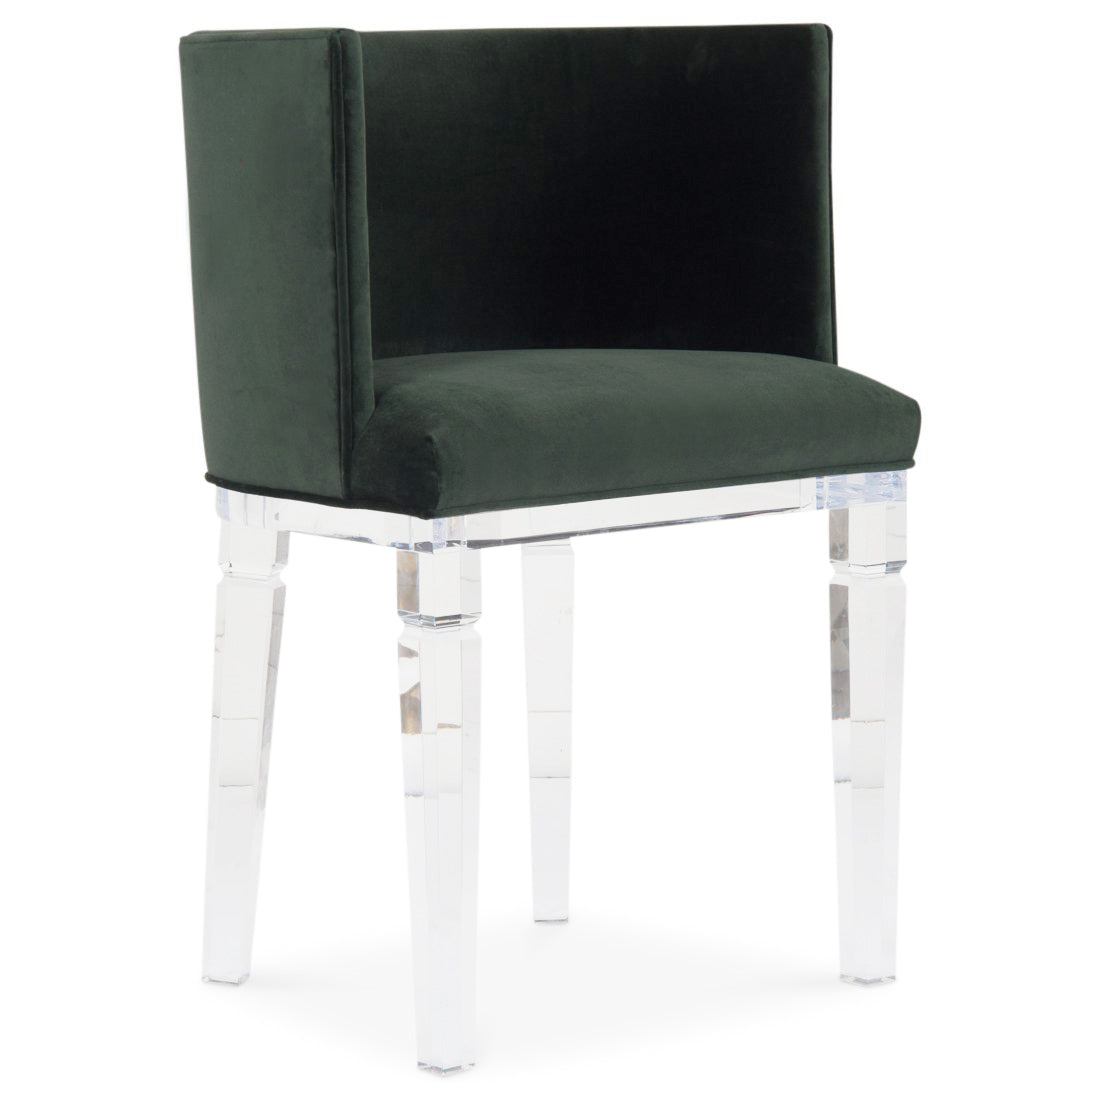 Beverly Hills Dining Chair - ModShop1.com